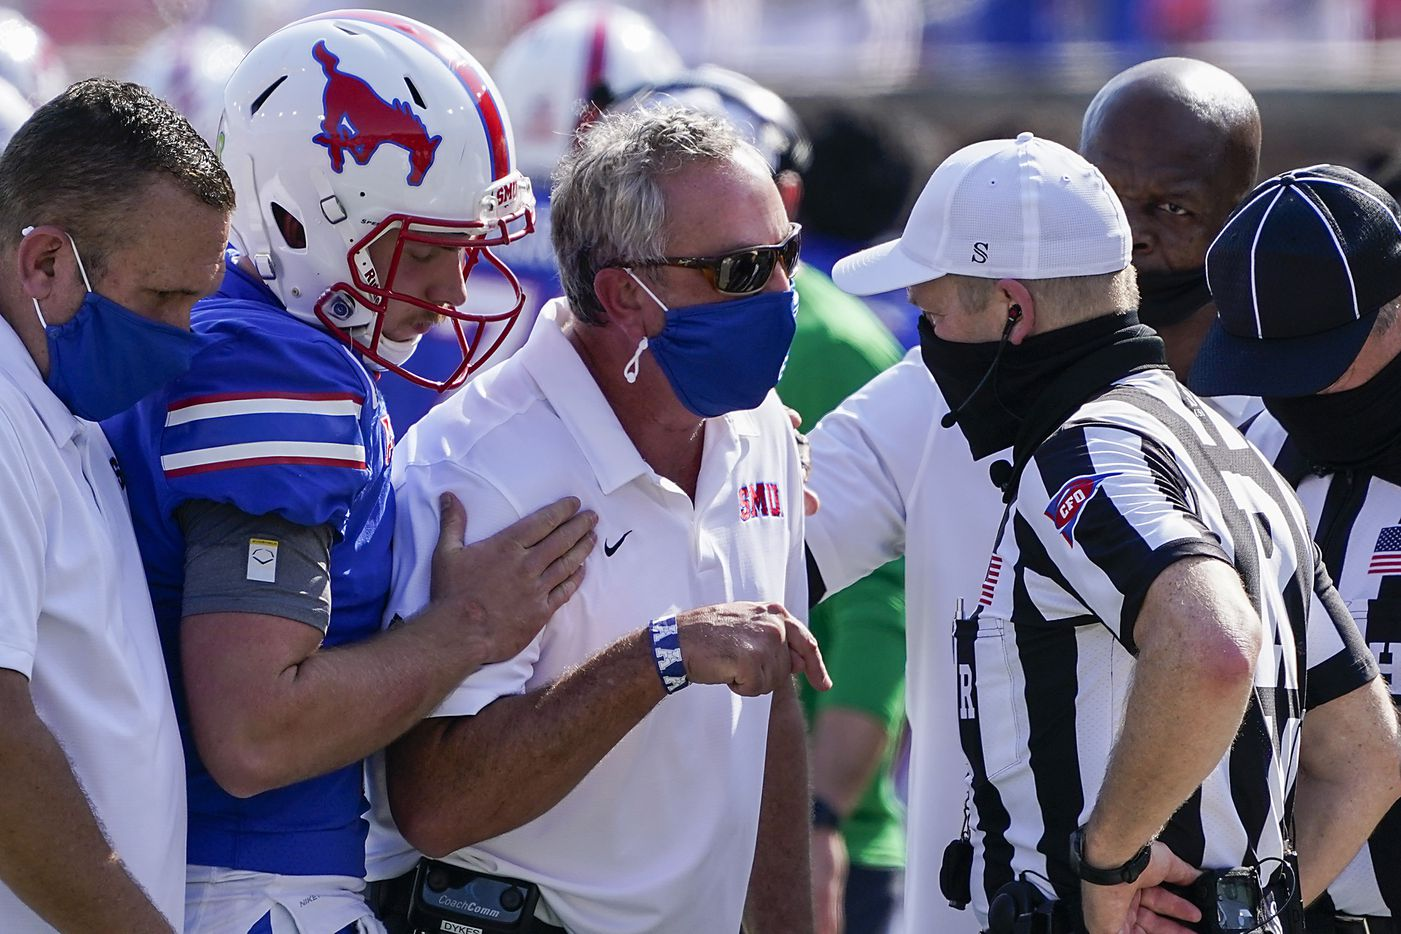 SMU head coach Sonny Dykes and quarterback Shane Buechele talk with the referee during the first half of an NCAA football game against Memphis at Ford Stadium on Saturday, Oct. 3, 2020, in Dallas.